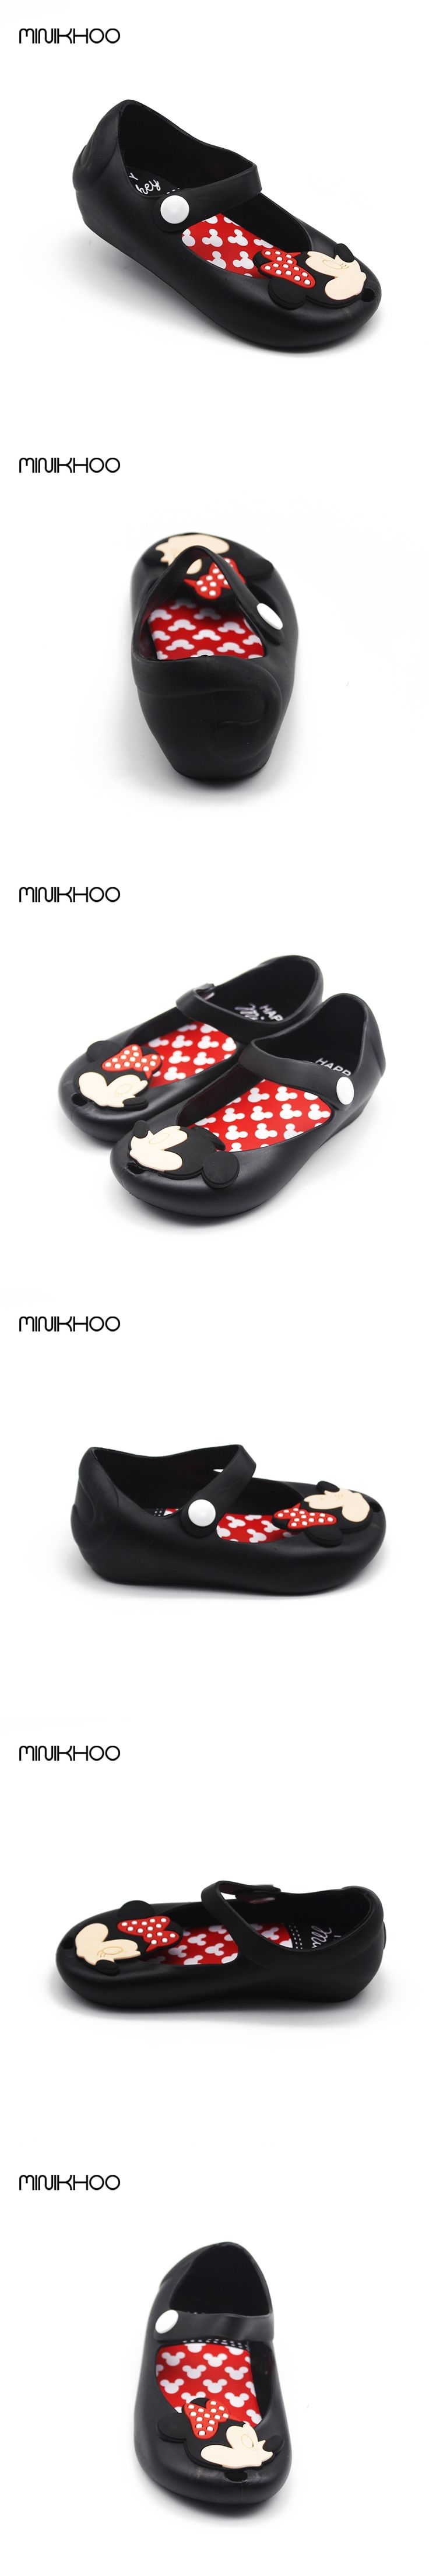 Mini Melissa 2016 Brazil New Jelly Shoes Mickey & Minnie Girls Shoes Crystal Jelly Melissa Sandals Fish Head Shoes Red Black